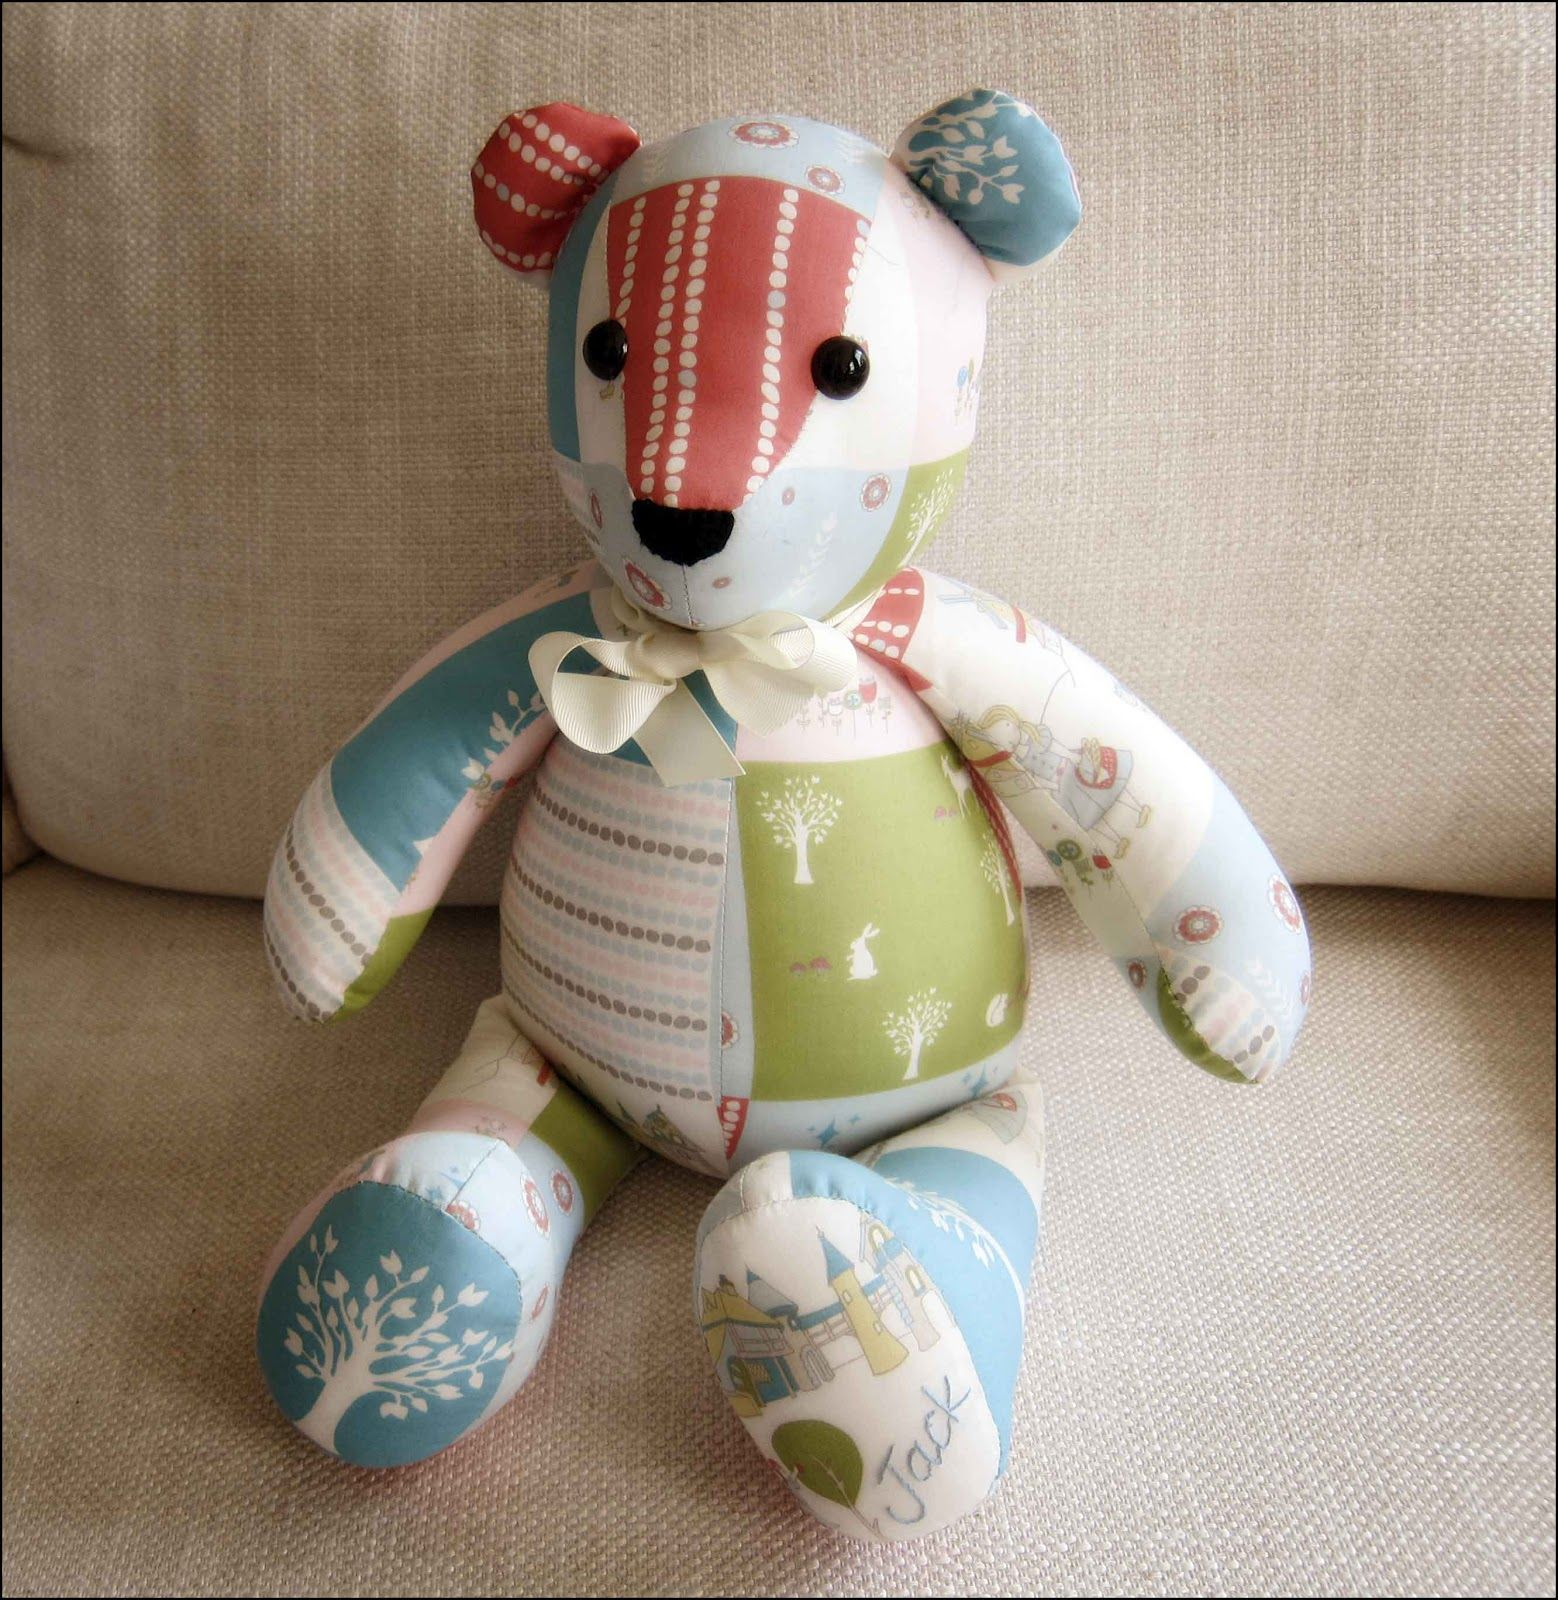 Printable Teddy Bear Sewing Pattern | If you go down in the woods ...